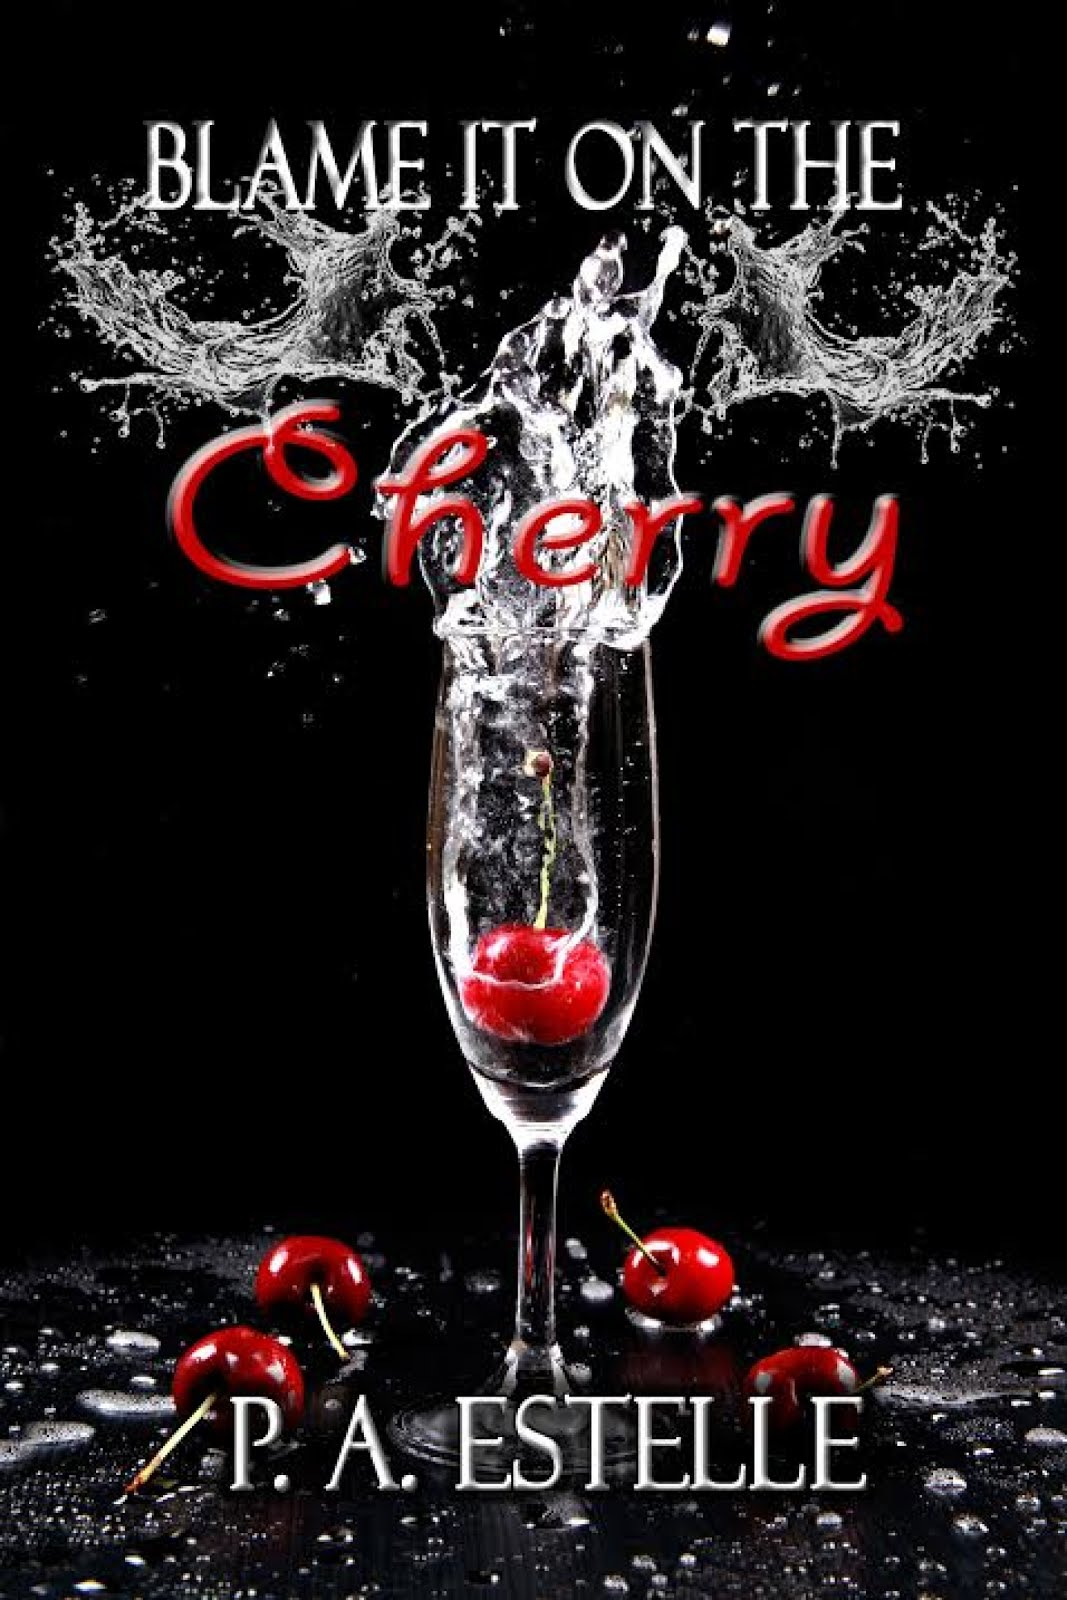 Blame It On The Cherry